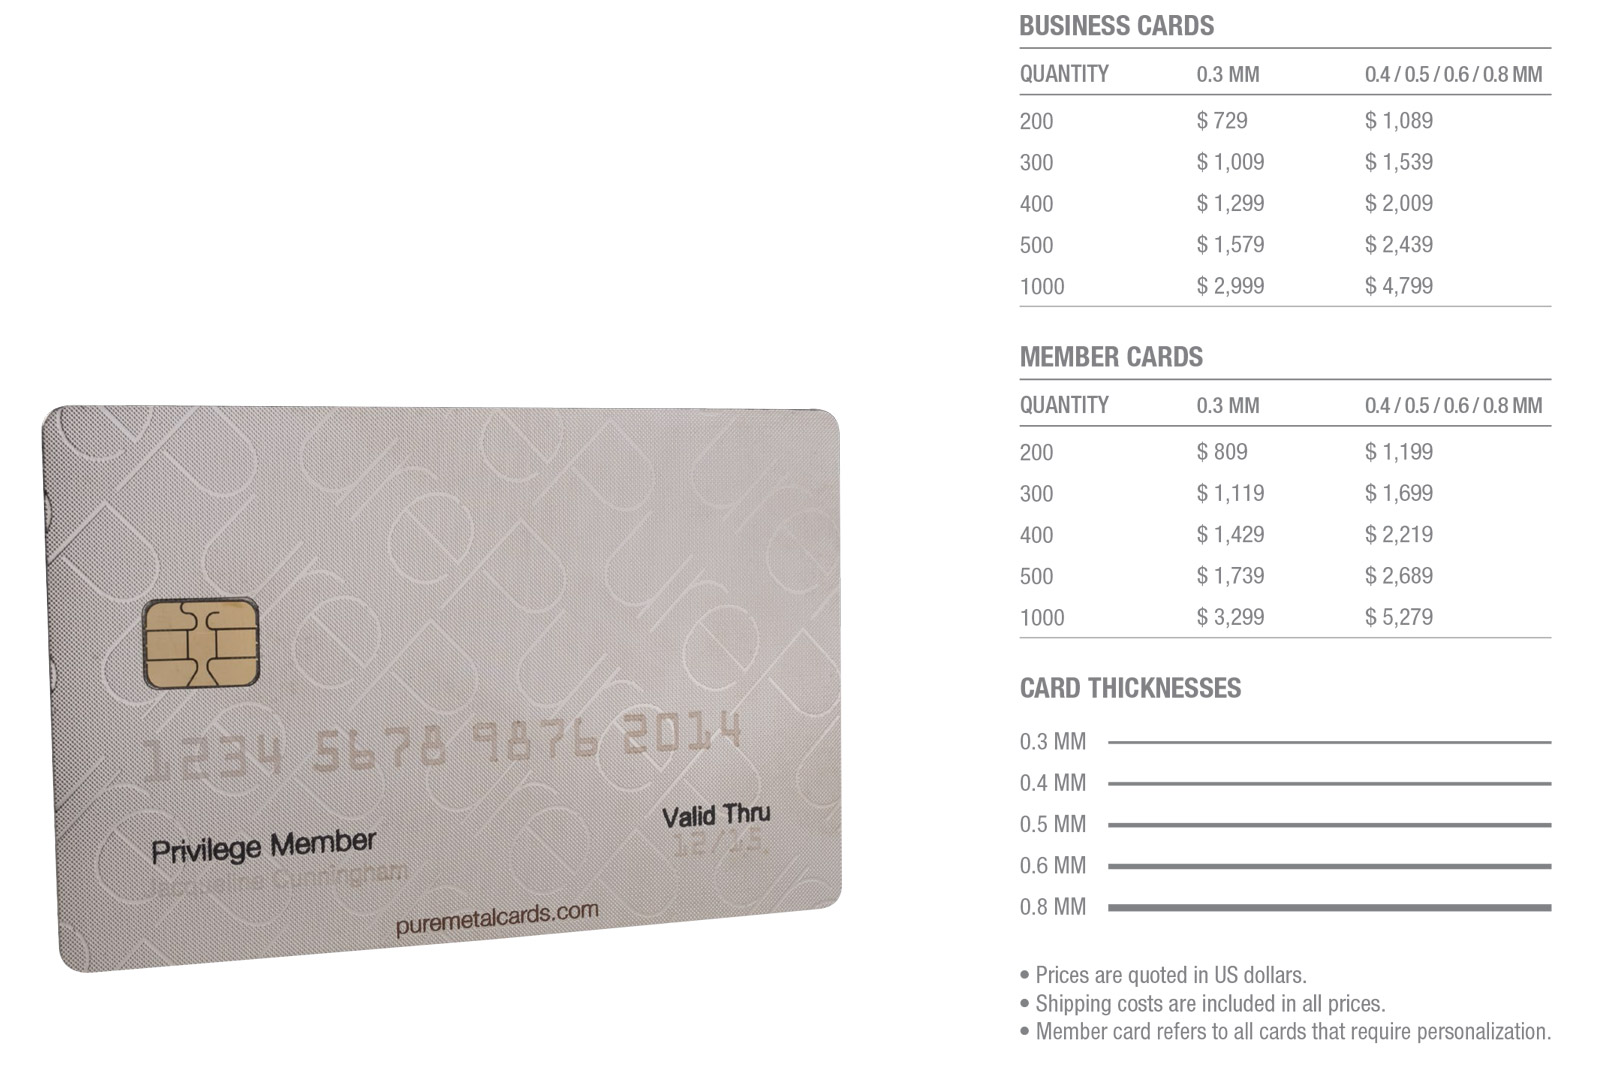 pure-metal-cards-silver-stainless-steel-cards-pricing-table